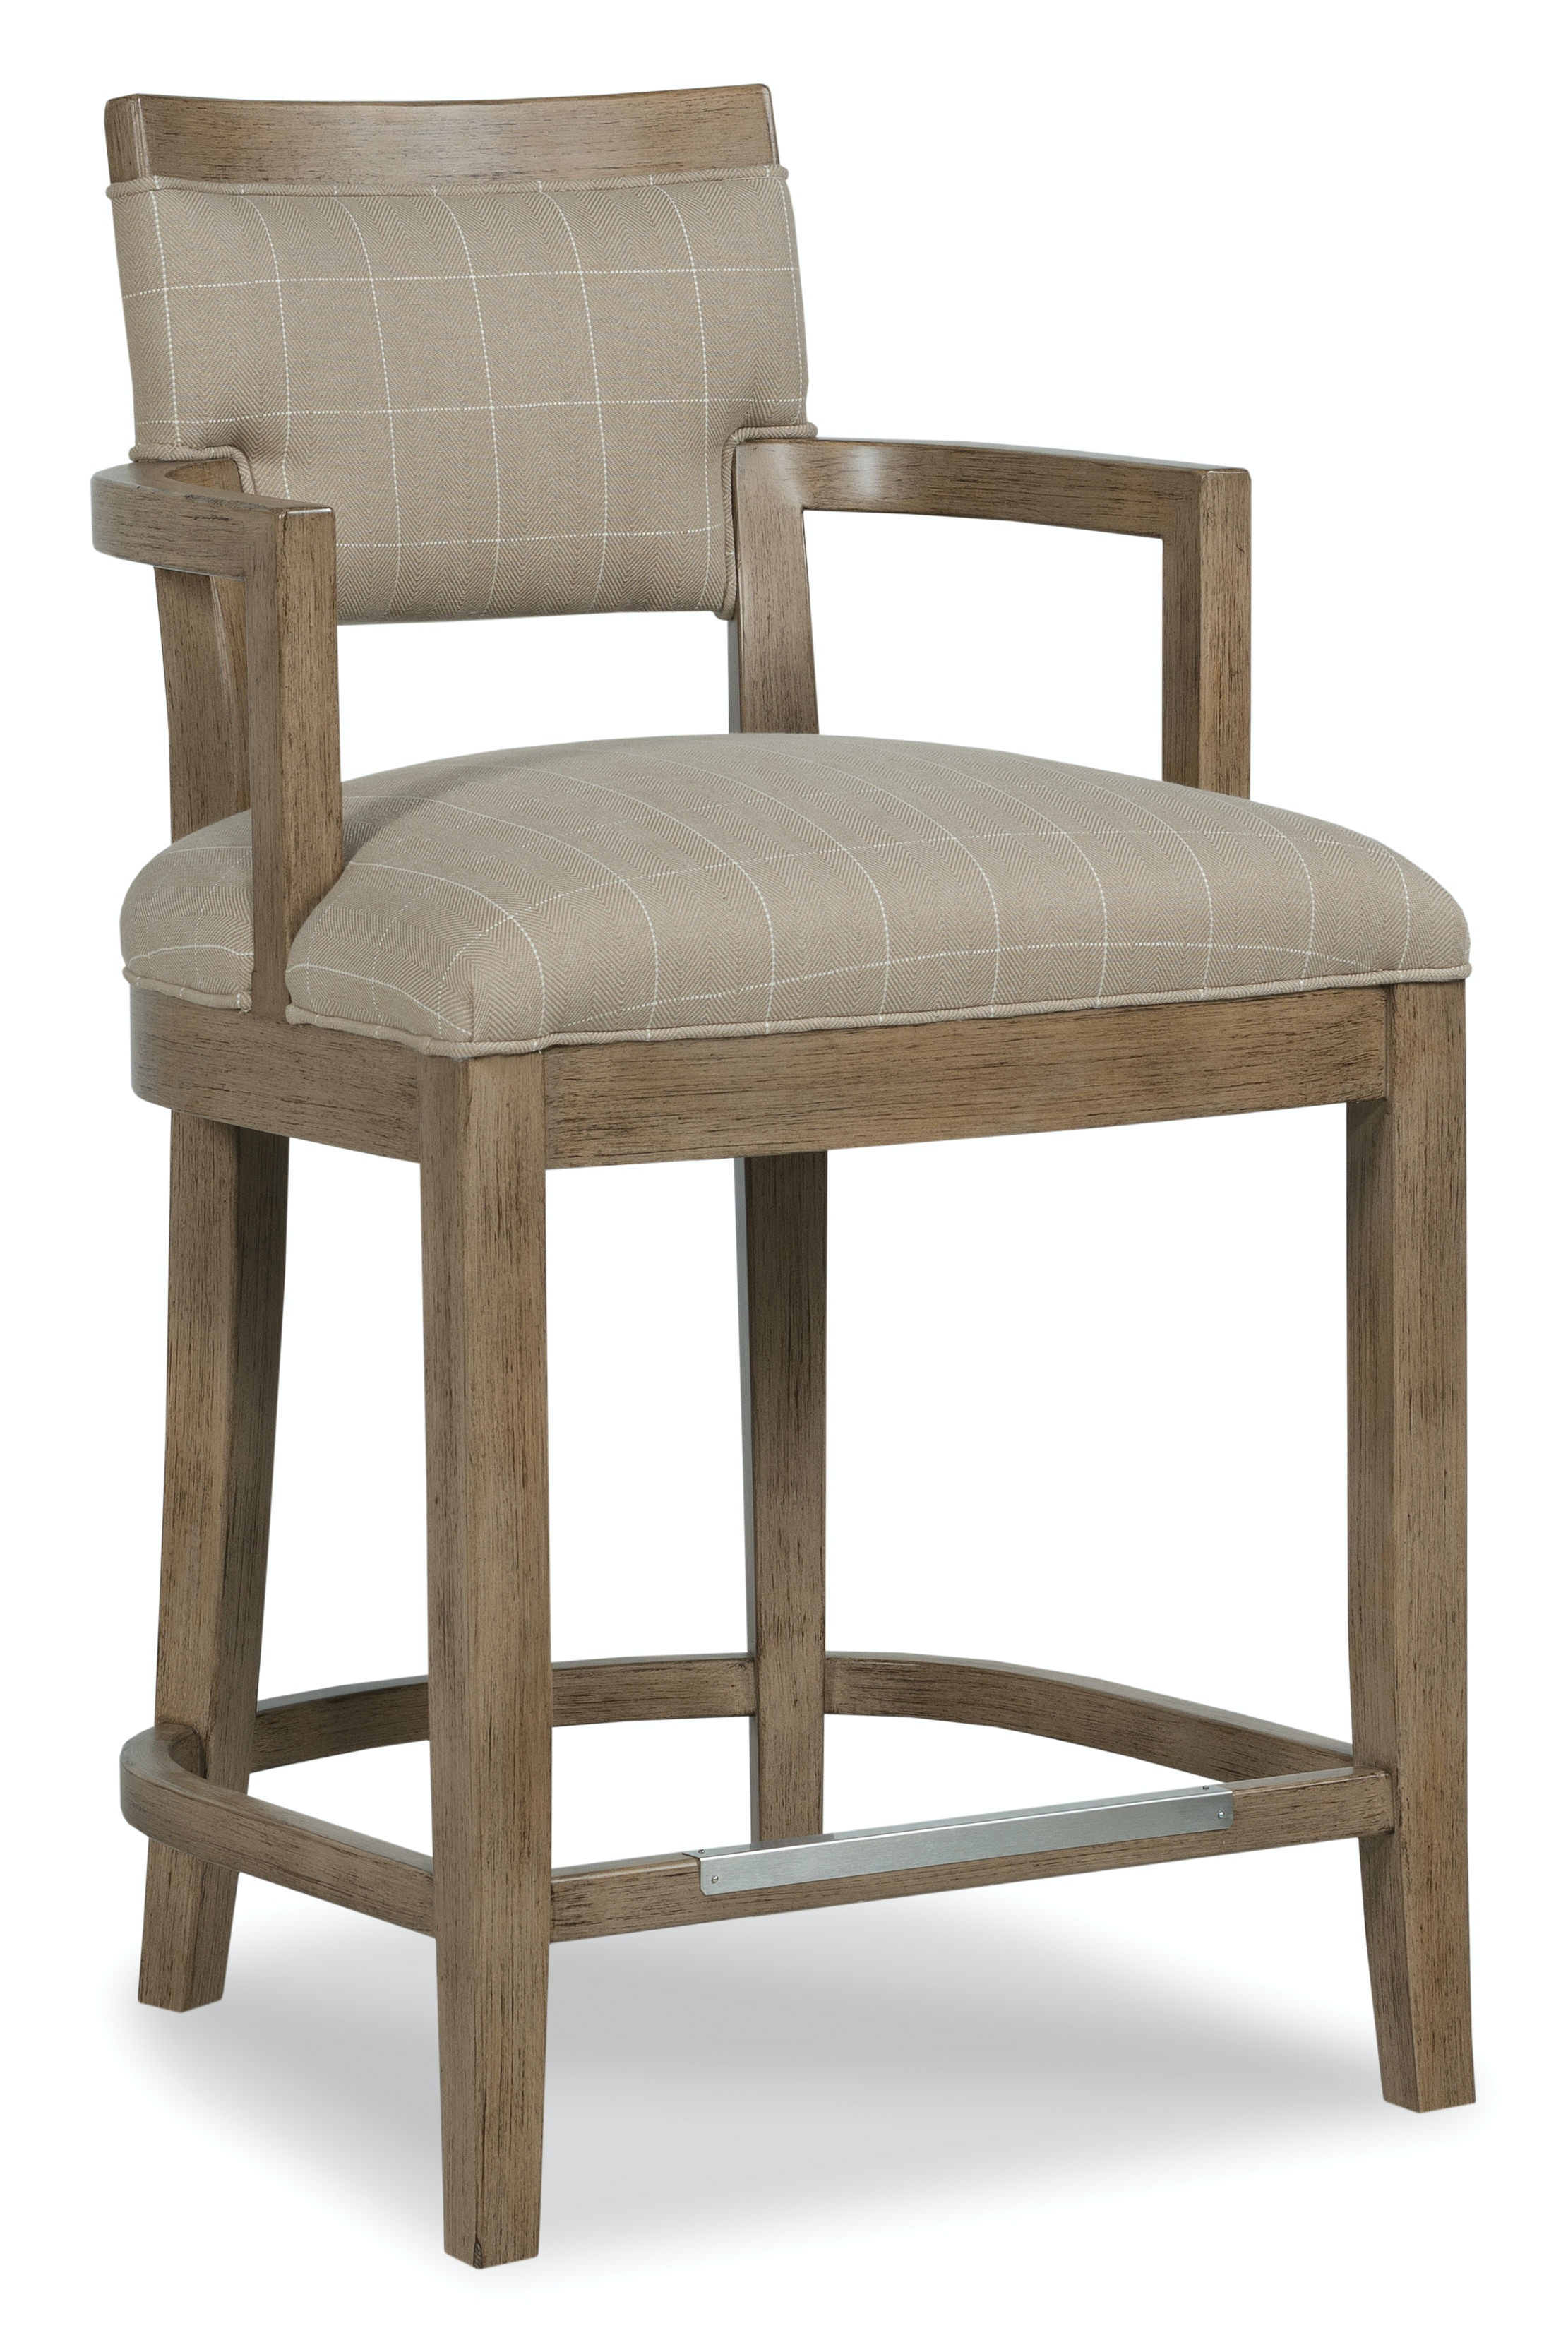 Fairfield Chair Company Keller Counter Stool 6068 C6